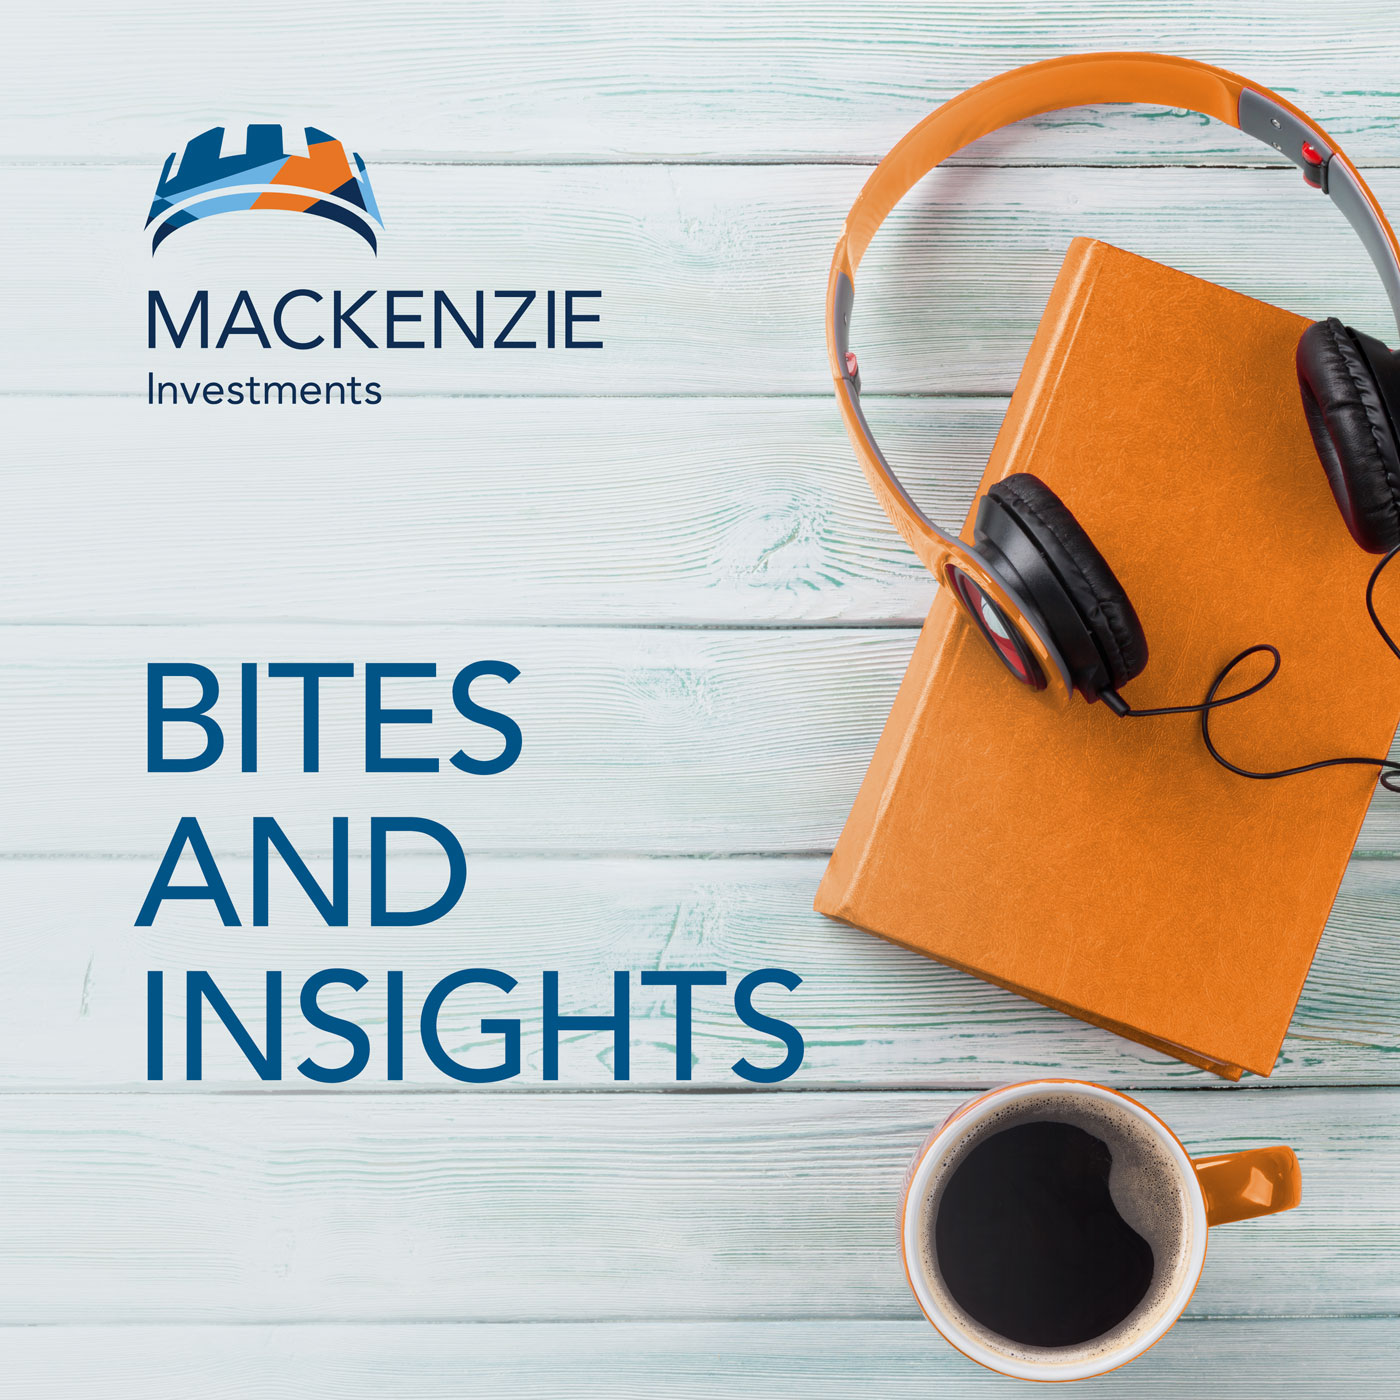 Mackenzie Investments Bites & Insights